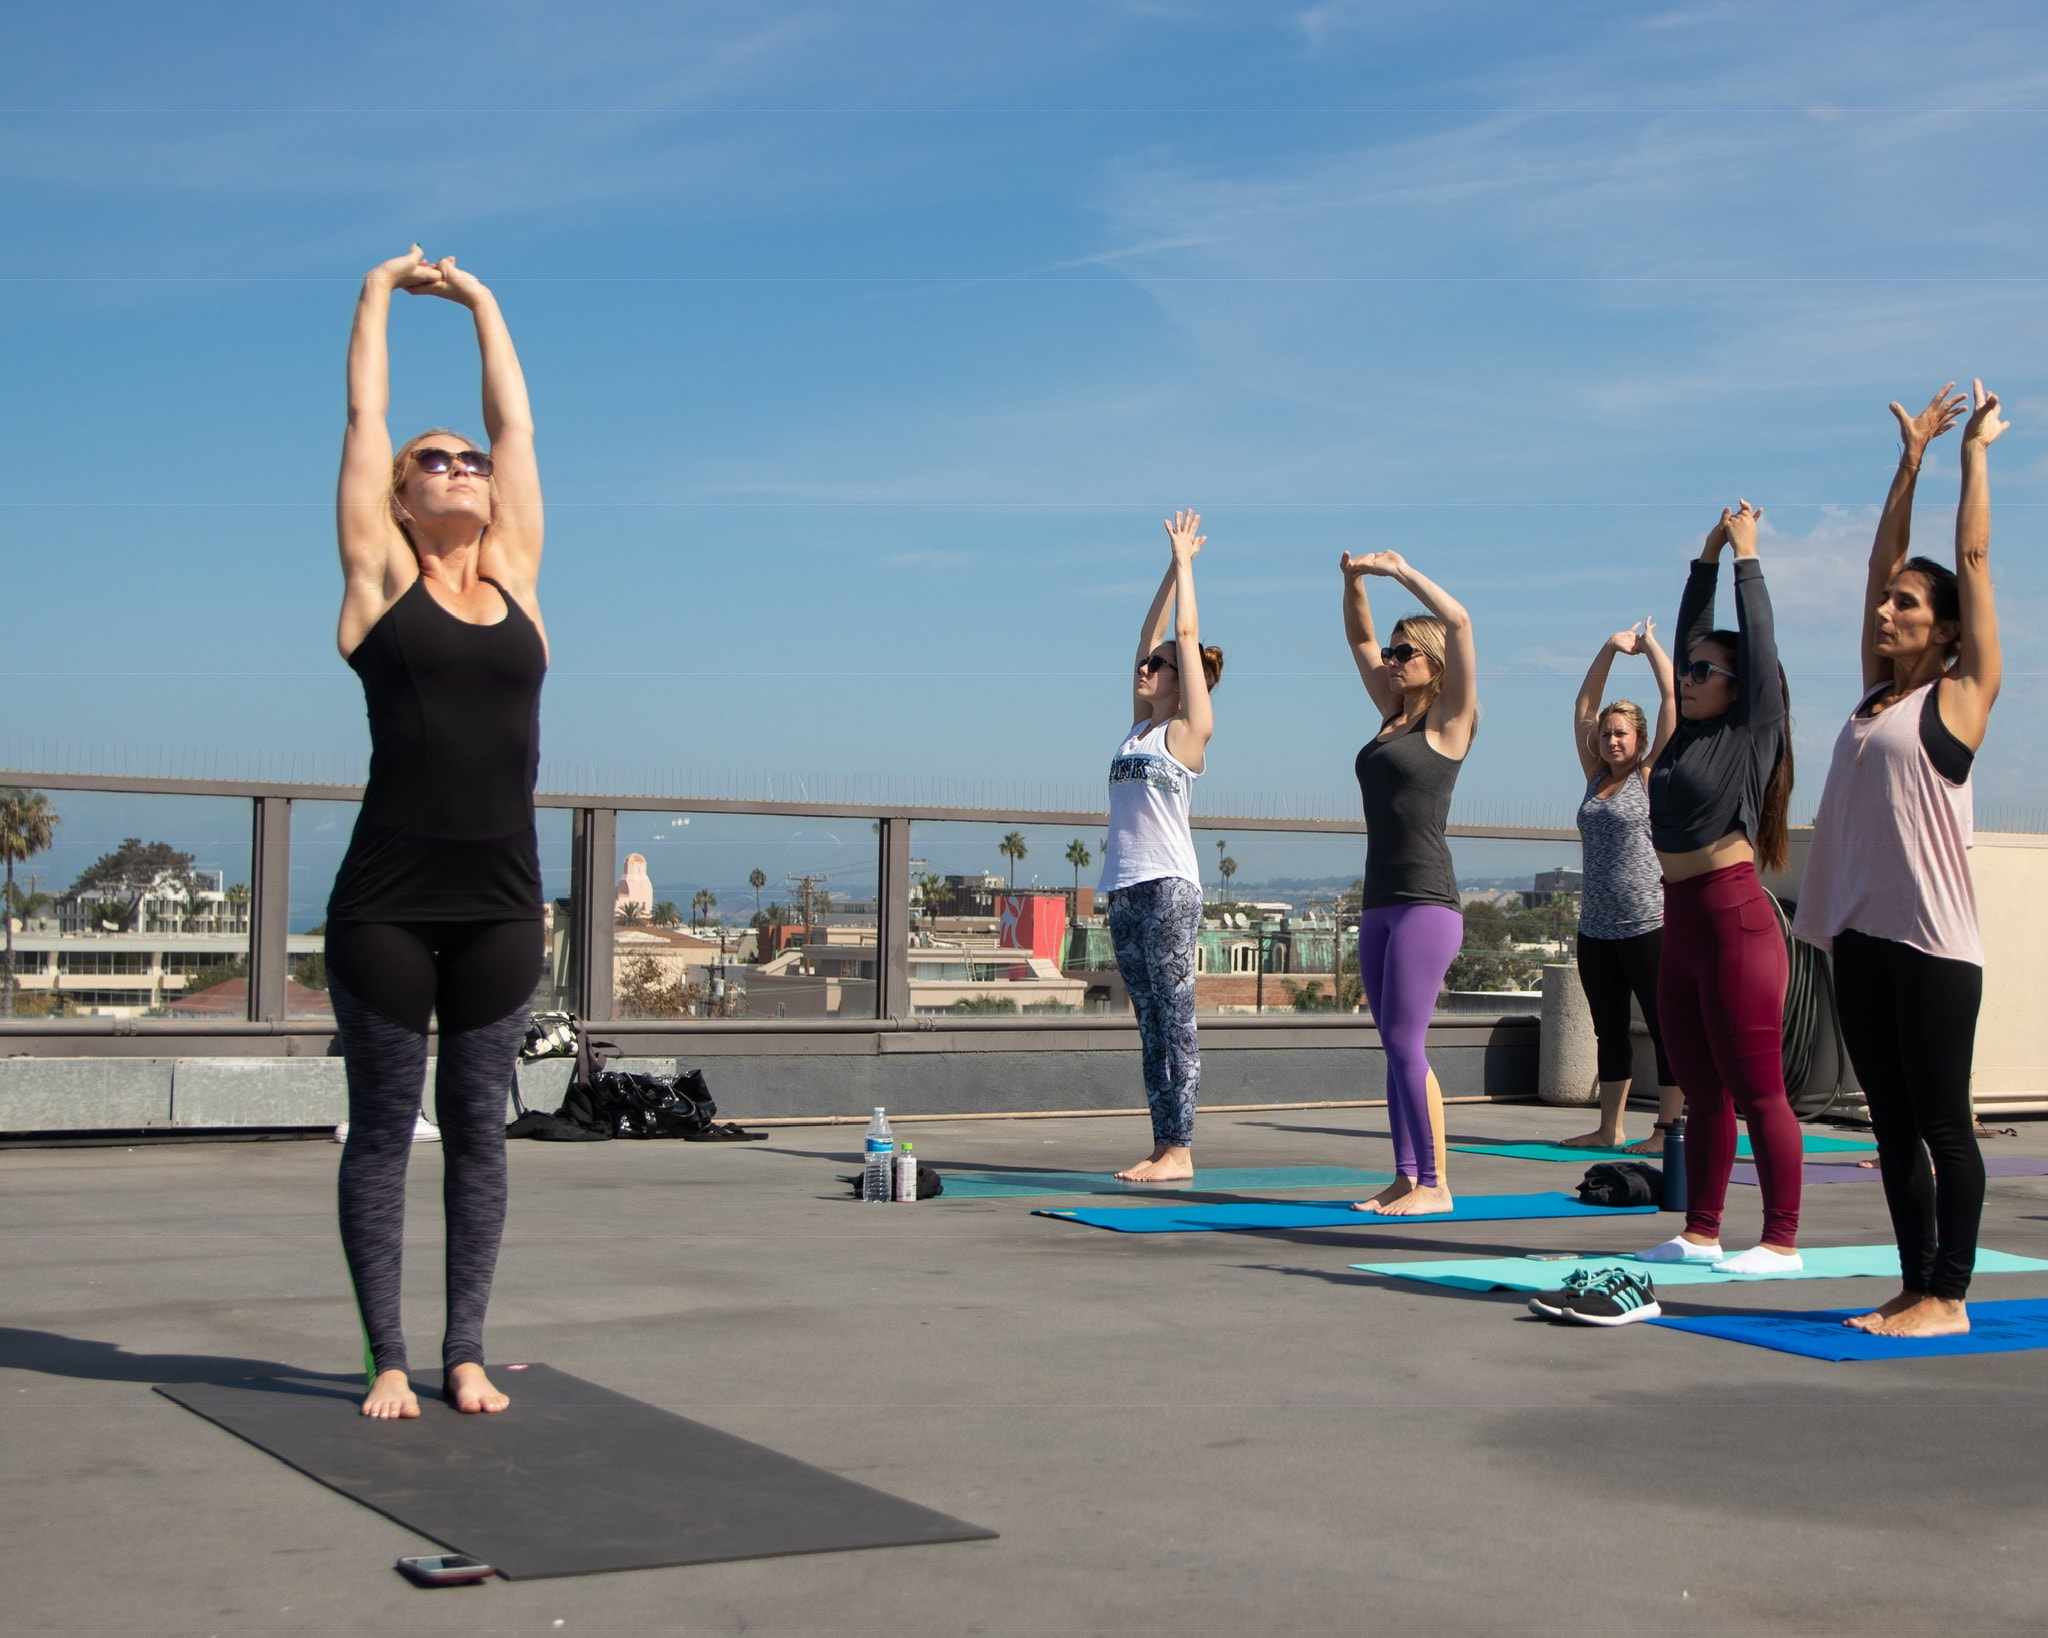 As much as I love yoga, mindfulness is more than the occassional yoga practice.